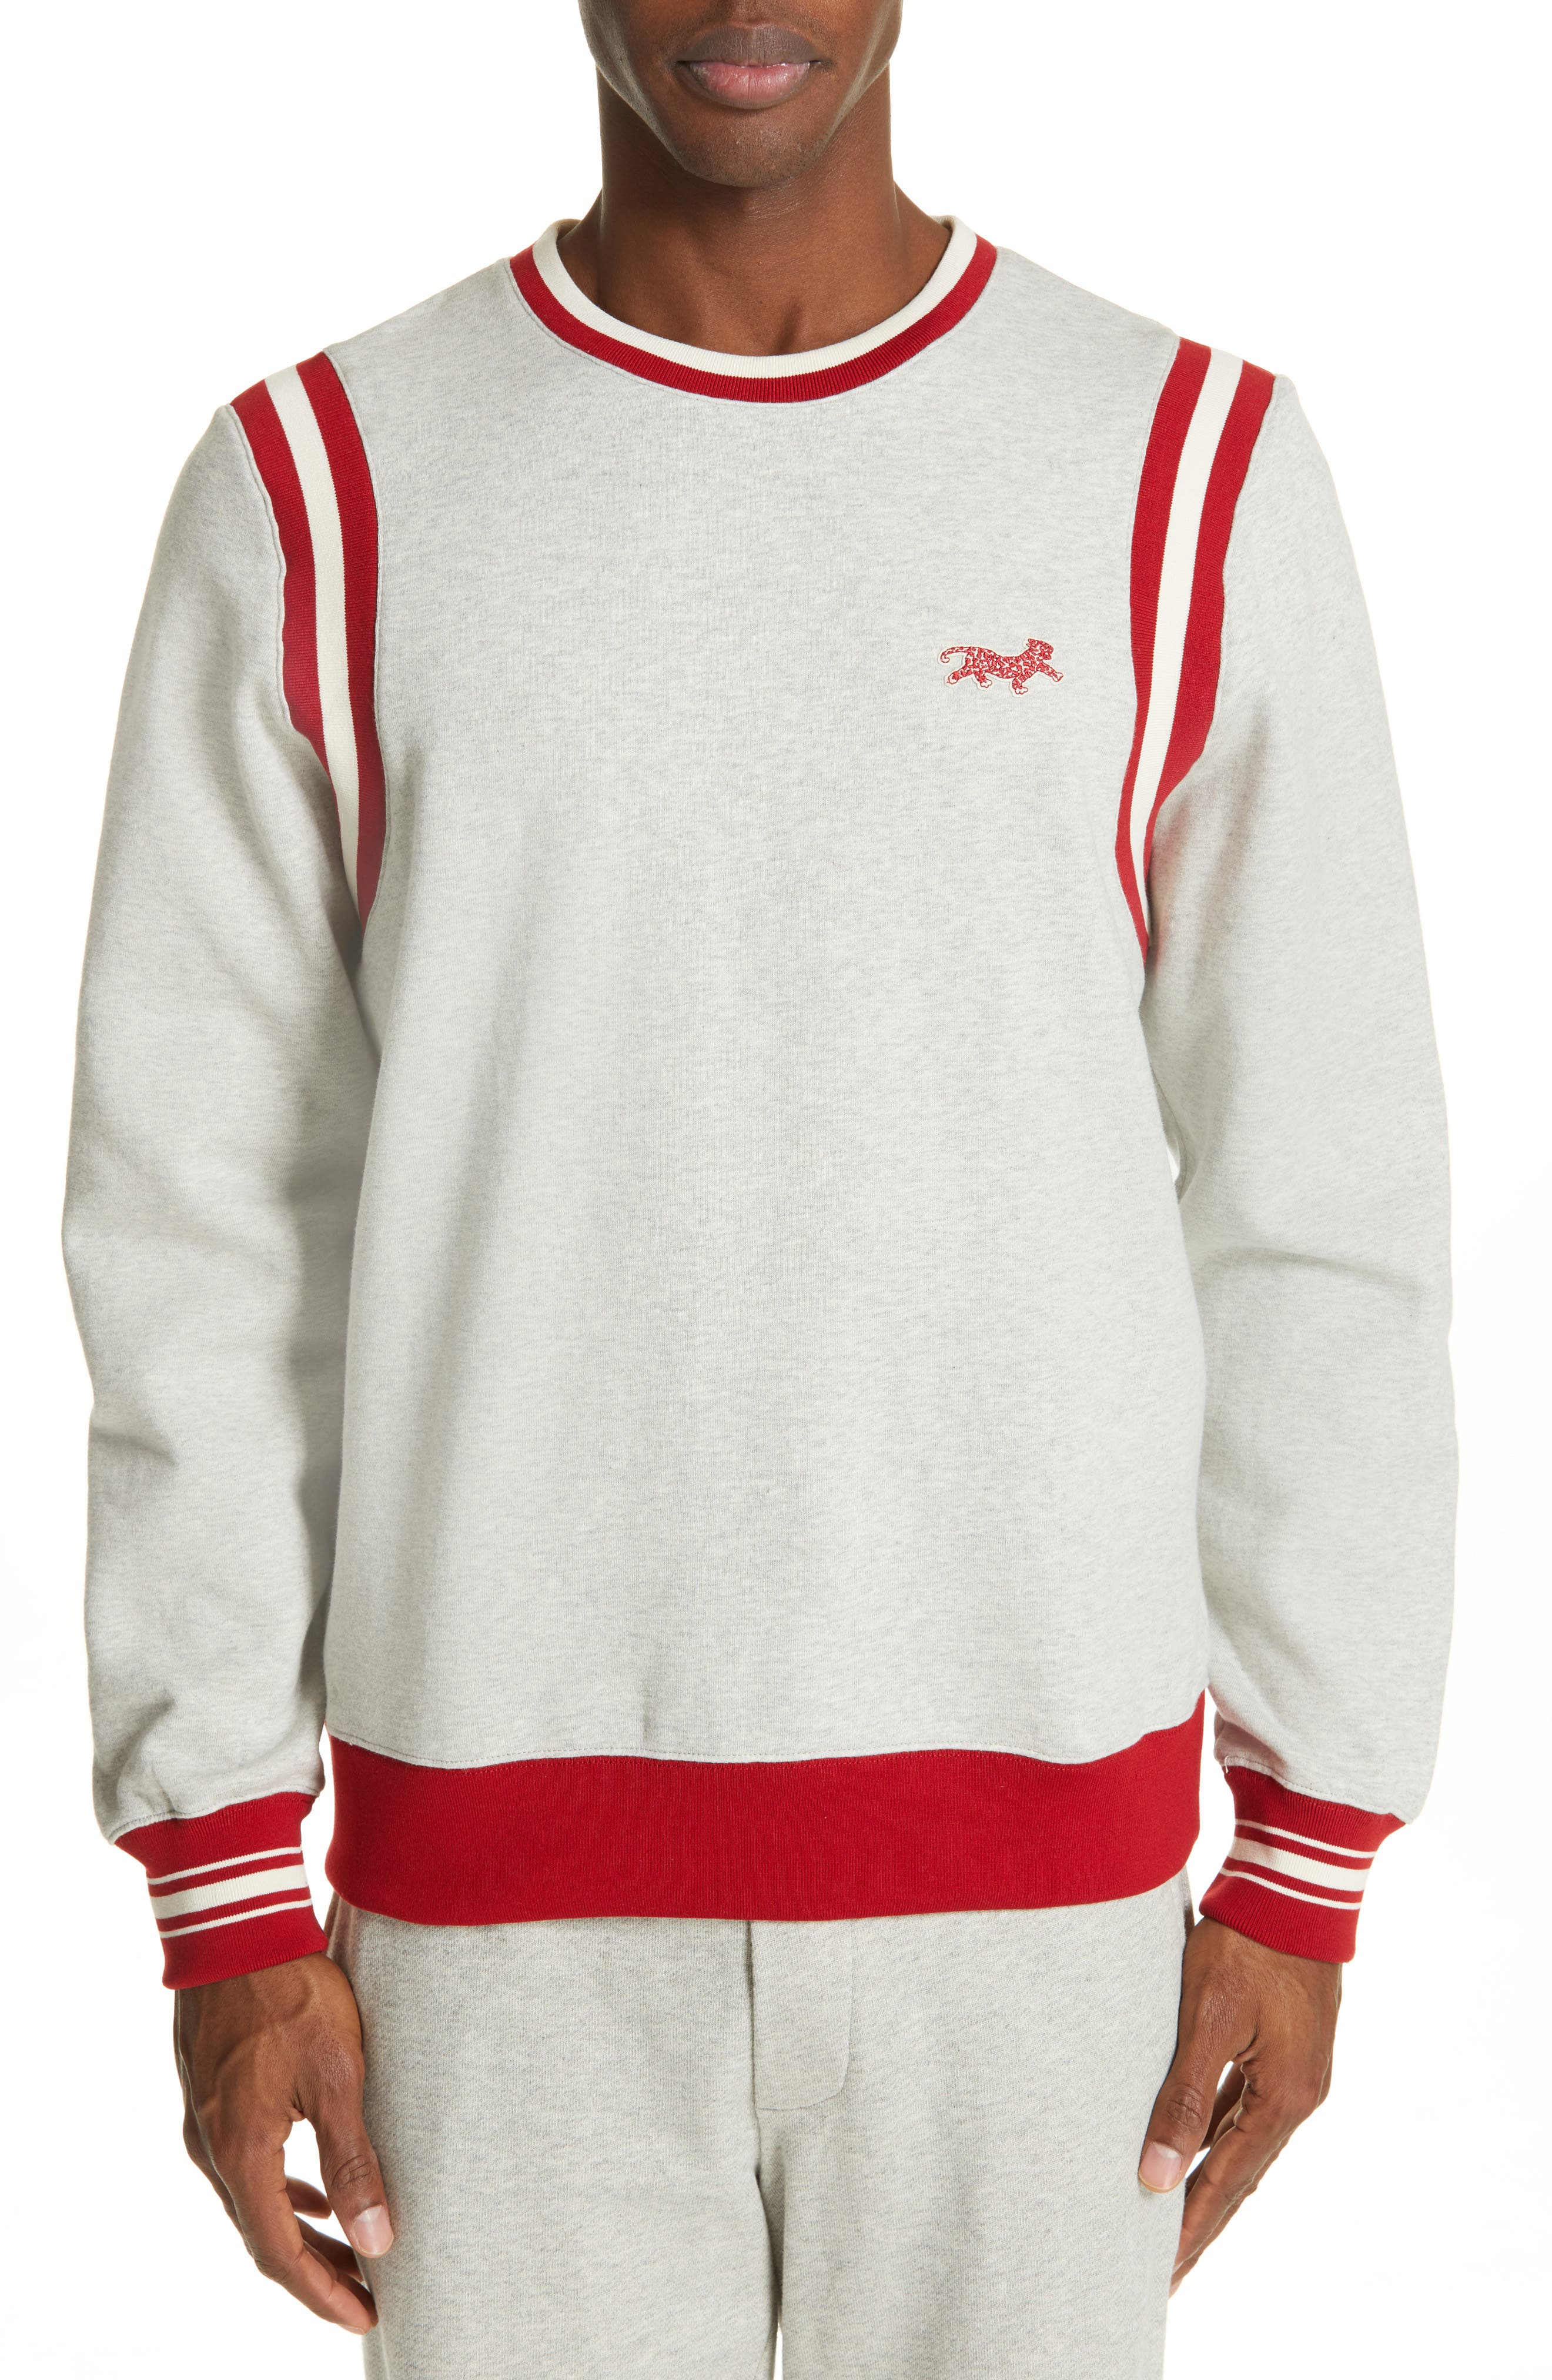 OVADIA & SONS, Varsity Sweatshirt, Main thumbnail 1, color, HEATHER GREY/RED